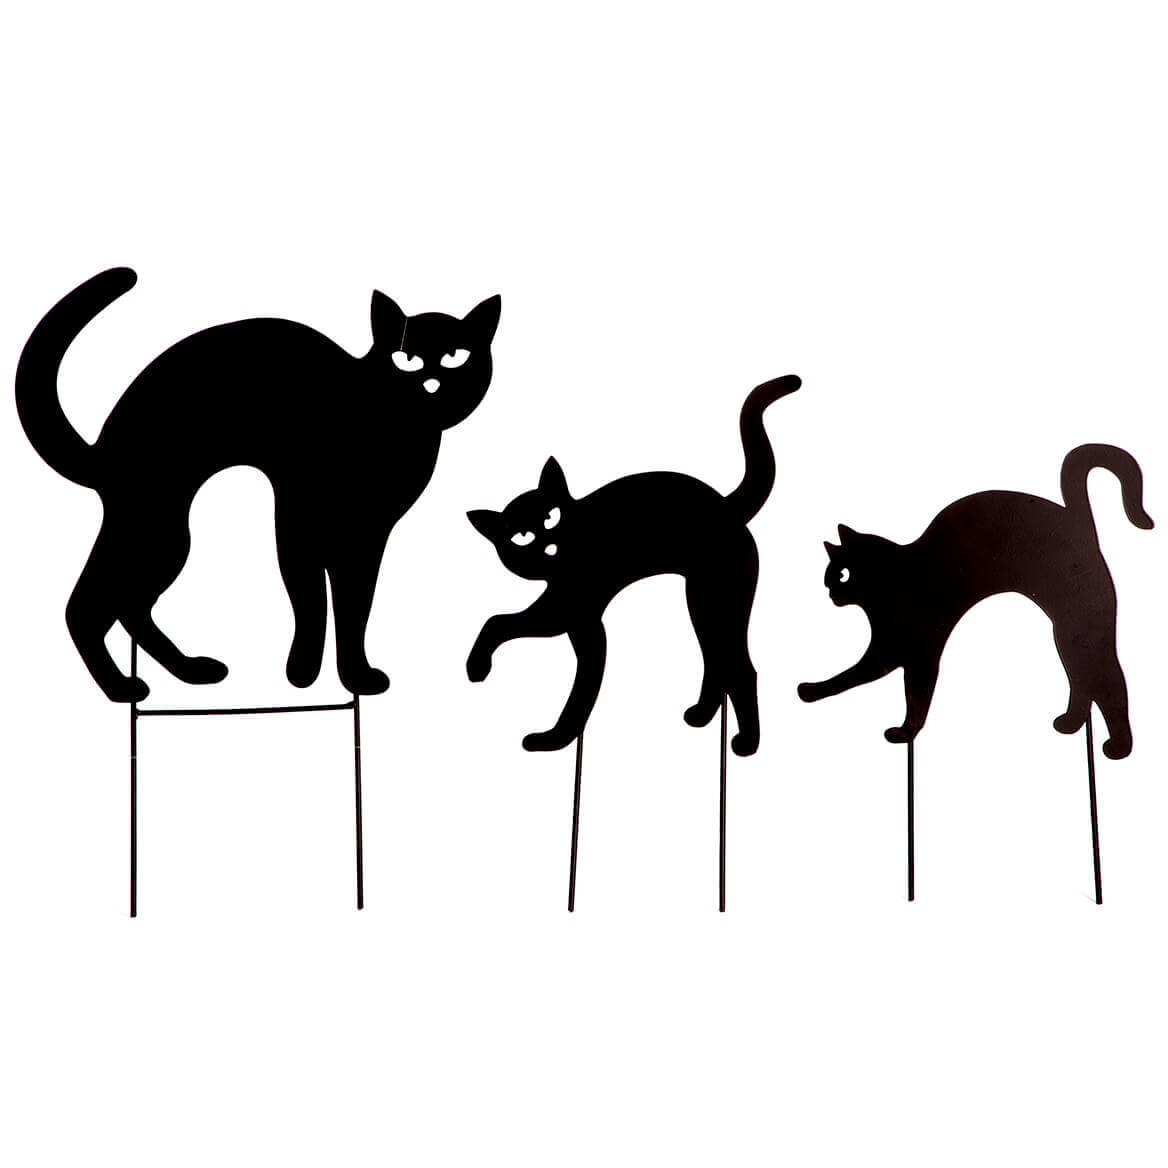 Metal Black Cat Stakes, Set of 3 by Fox River Creations™-365652